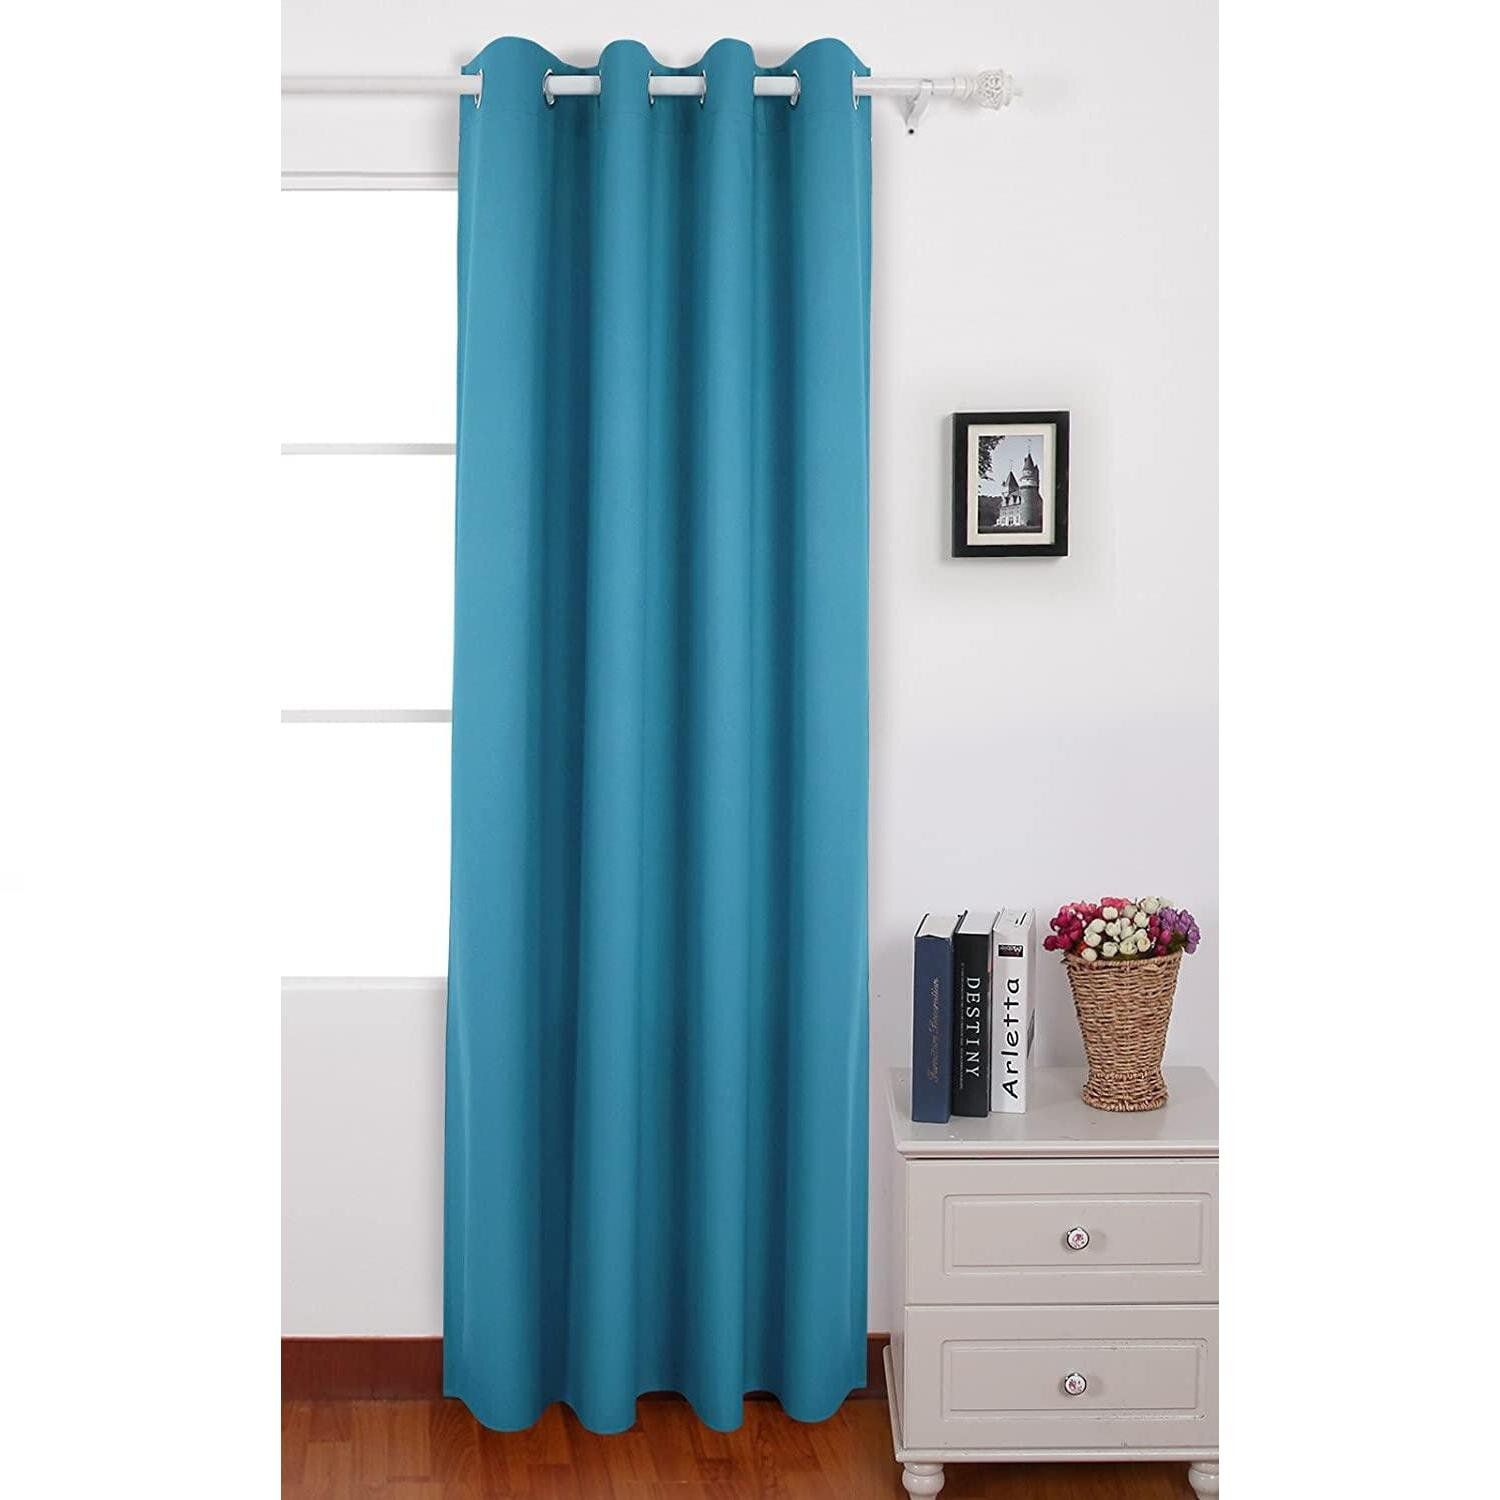 the 9 best thermal curtains of 2021